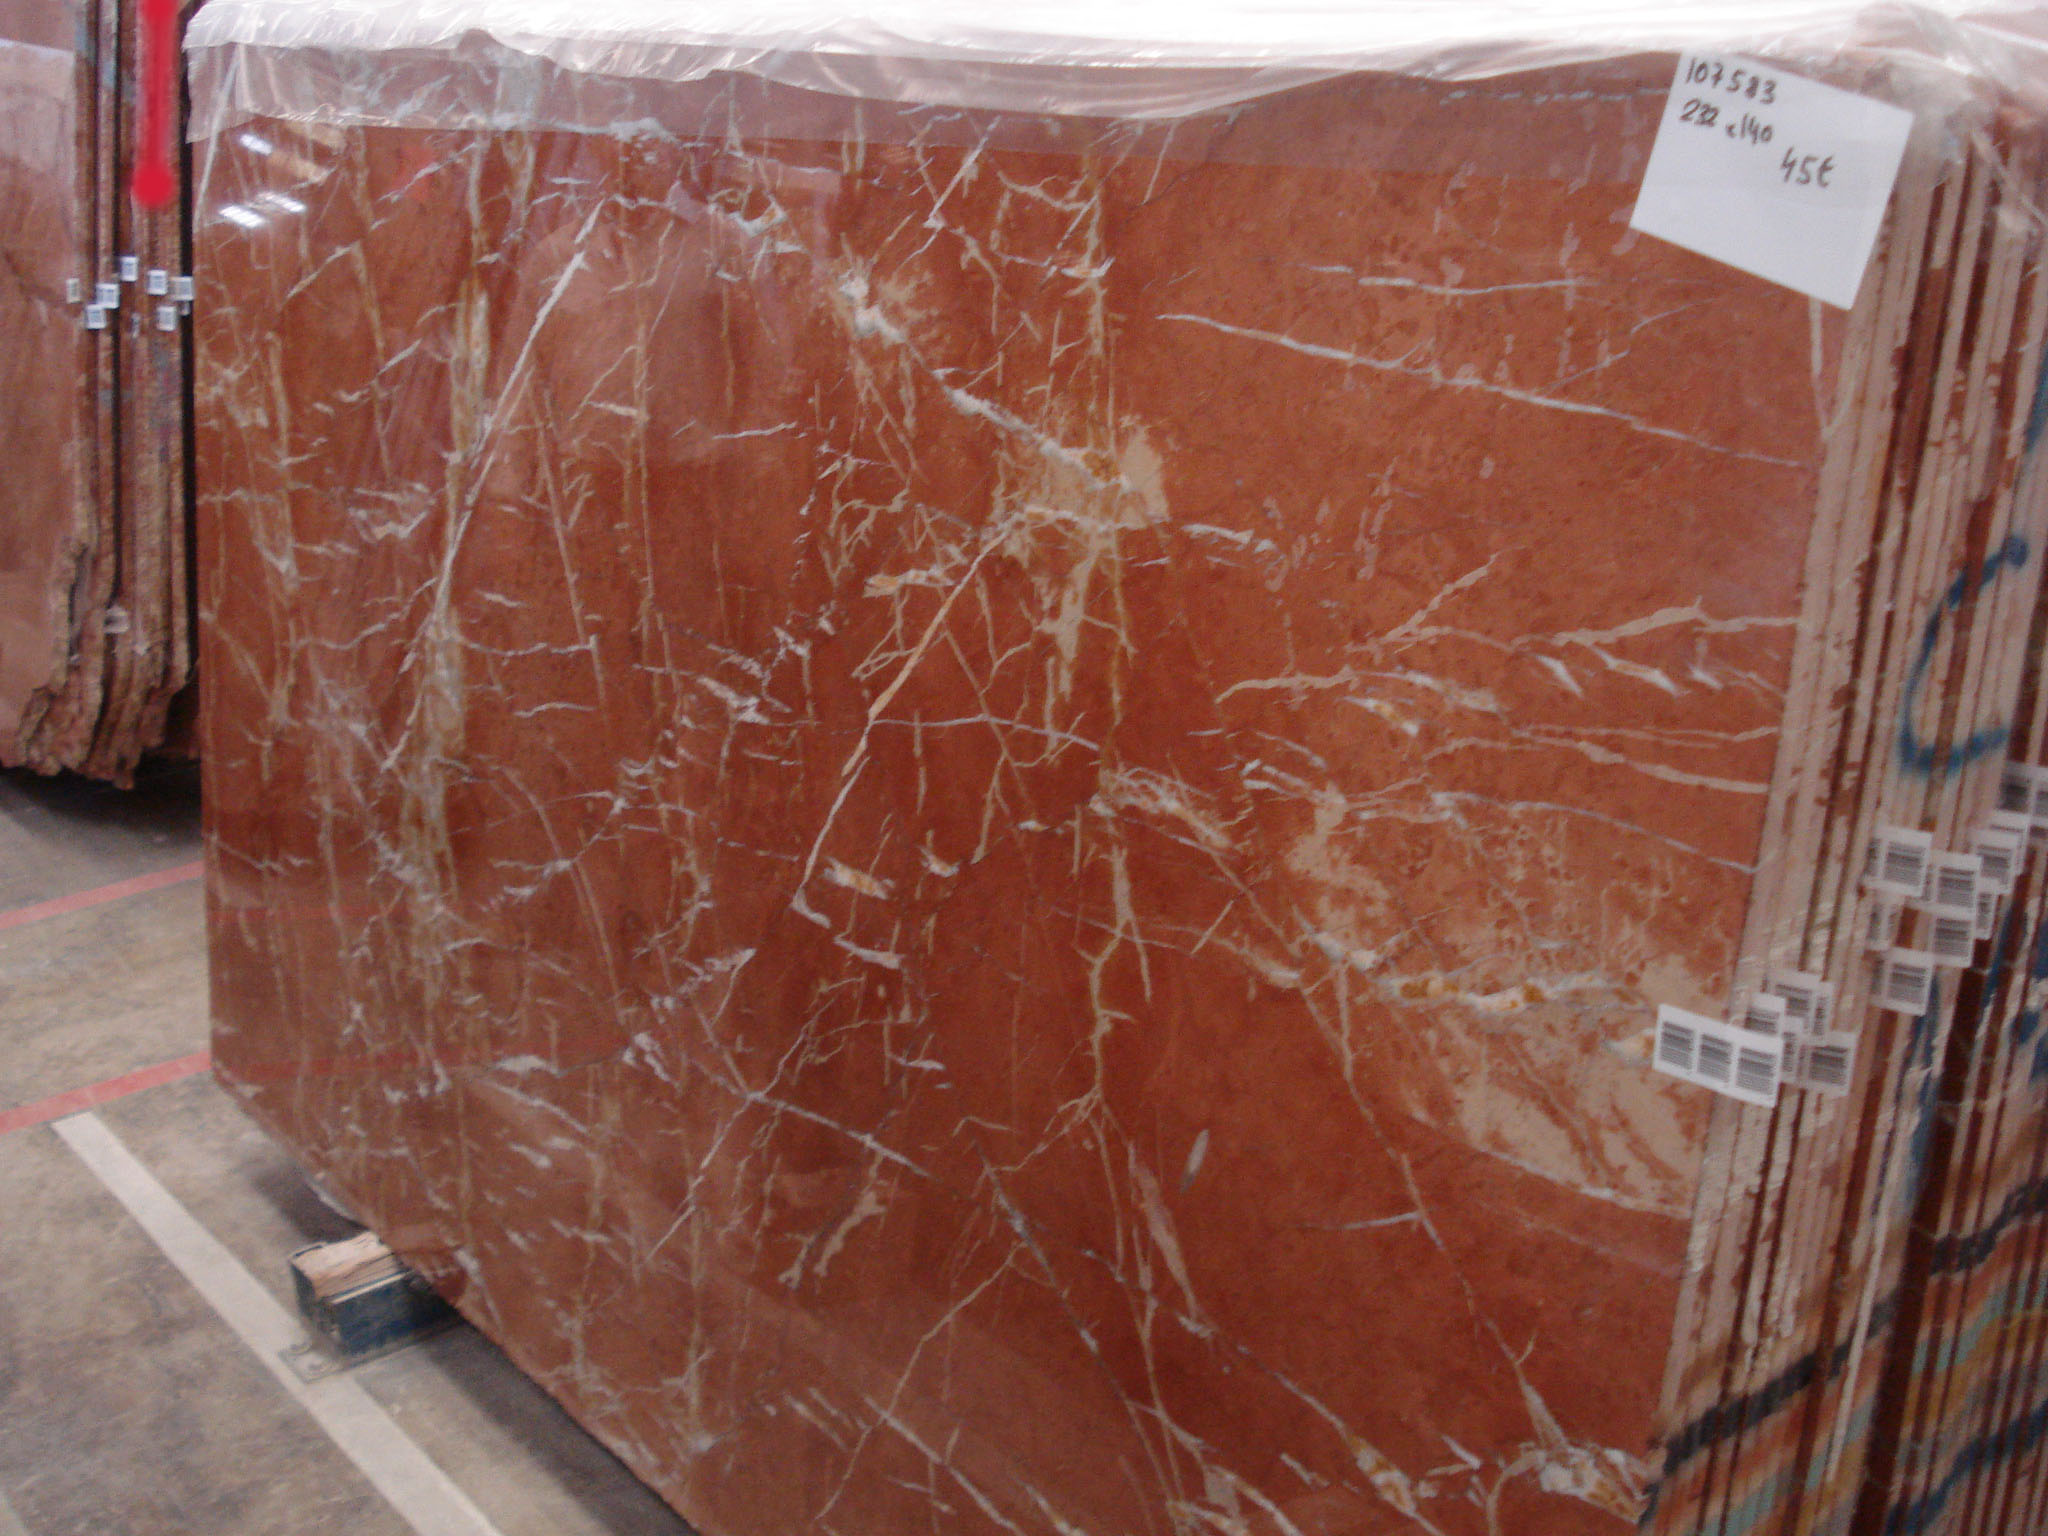 Rojo Alicante Classic Marble Product Description